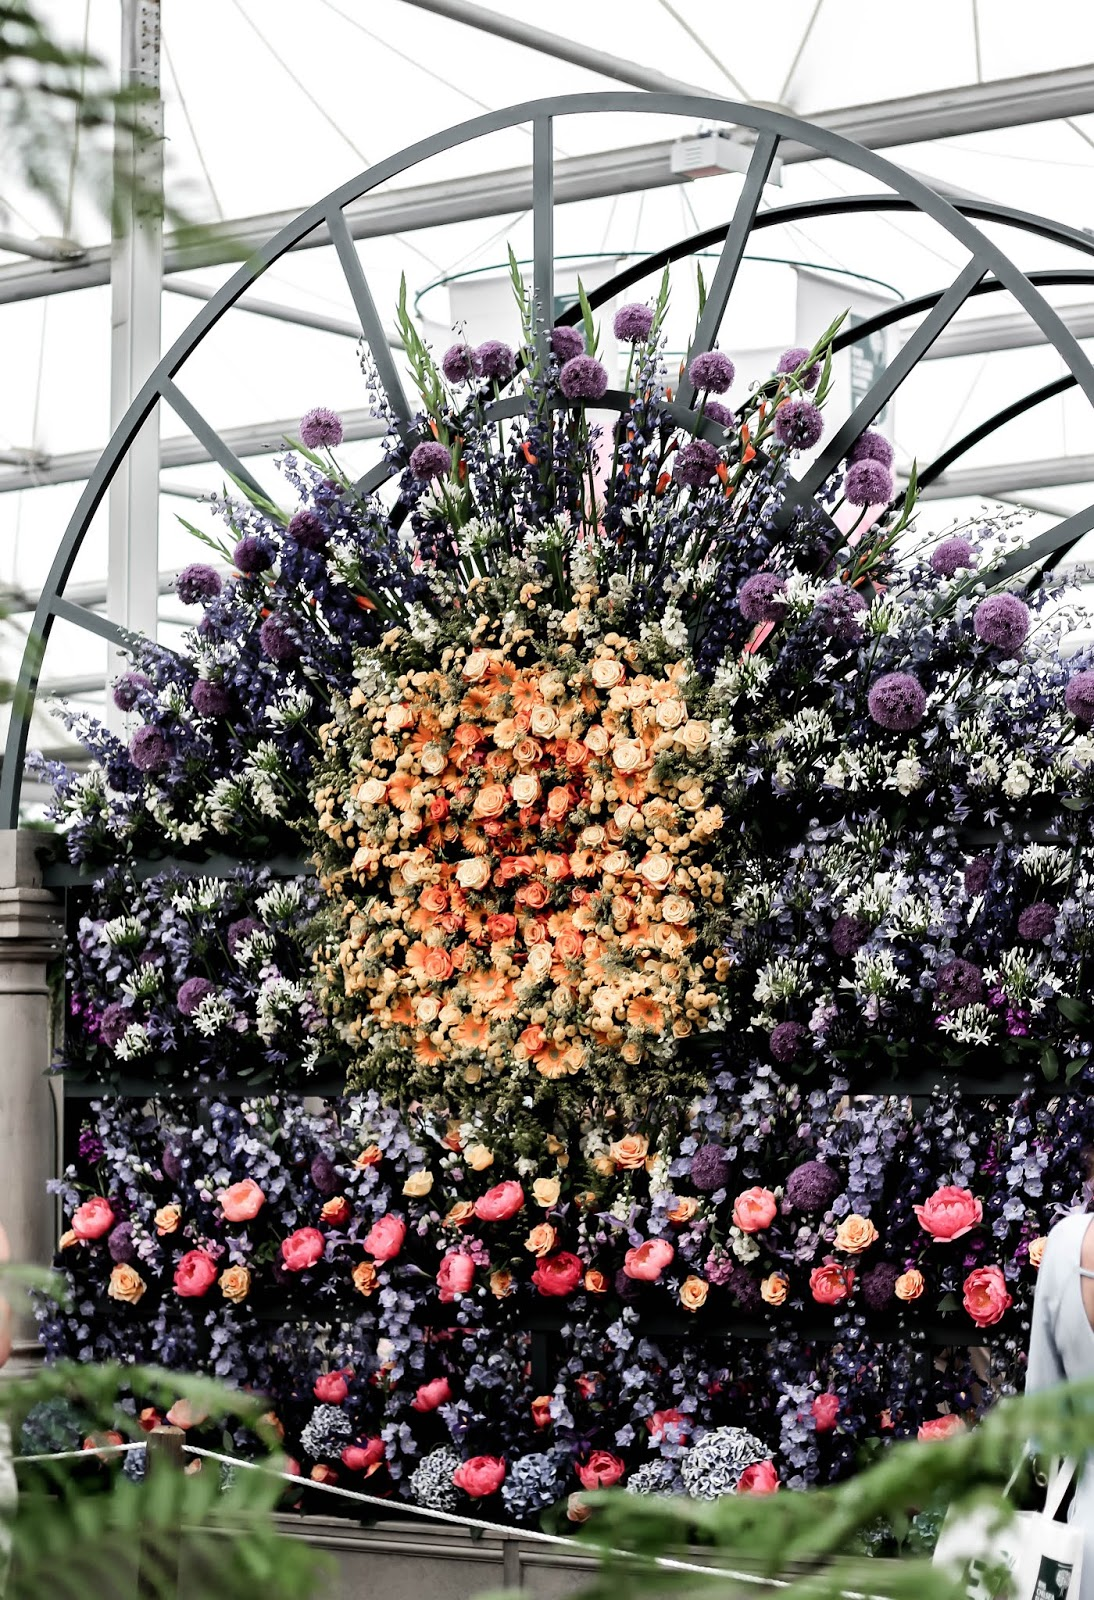 M&S Flower Wall at Chelsea Flower Show 2018